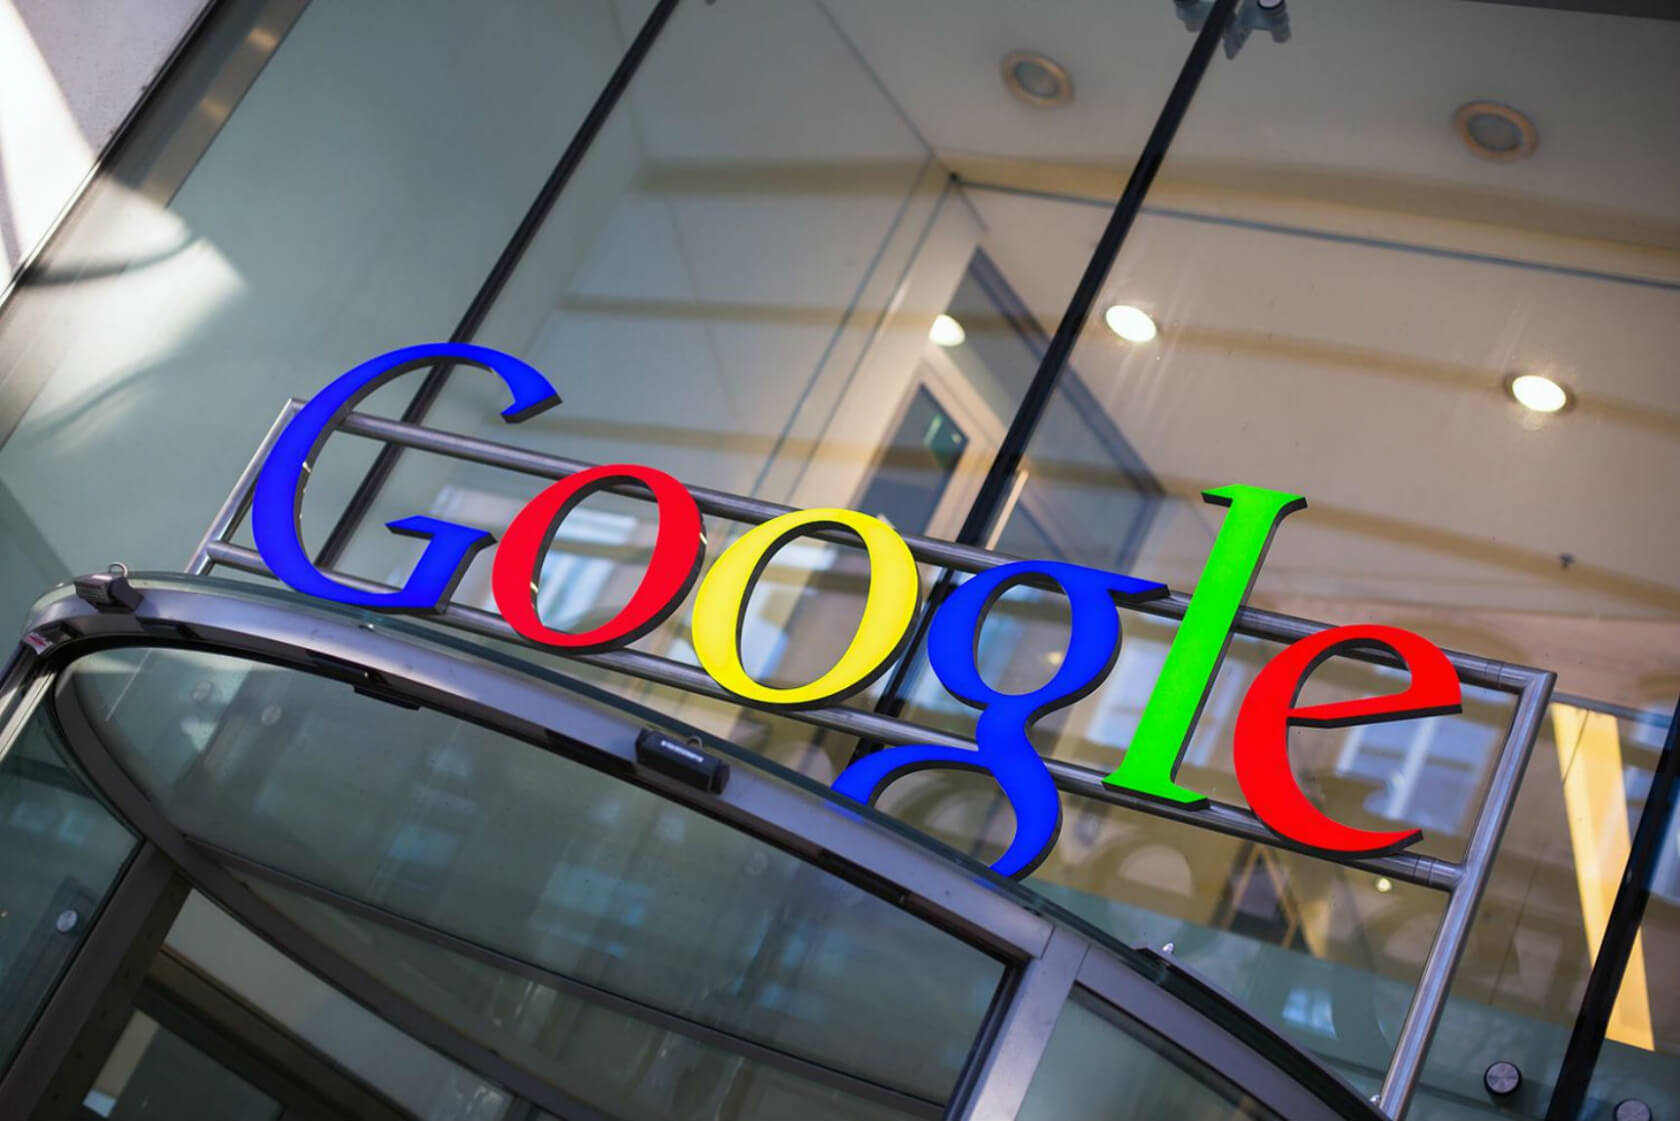 UK group launches class action suit against Google over iPhone data harvesting